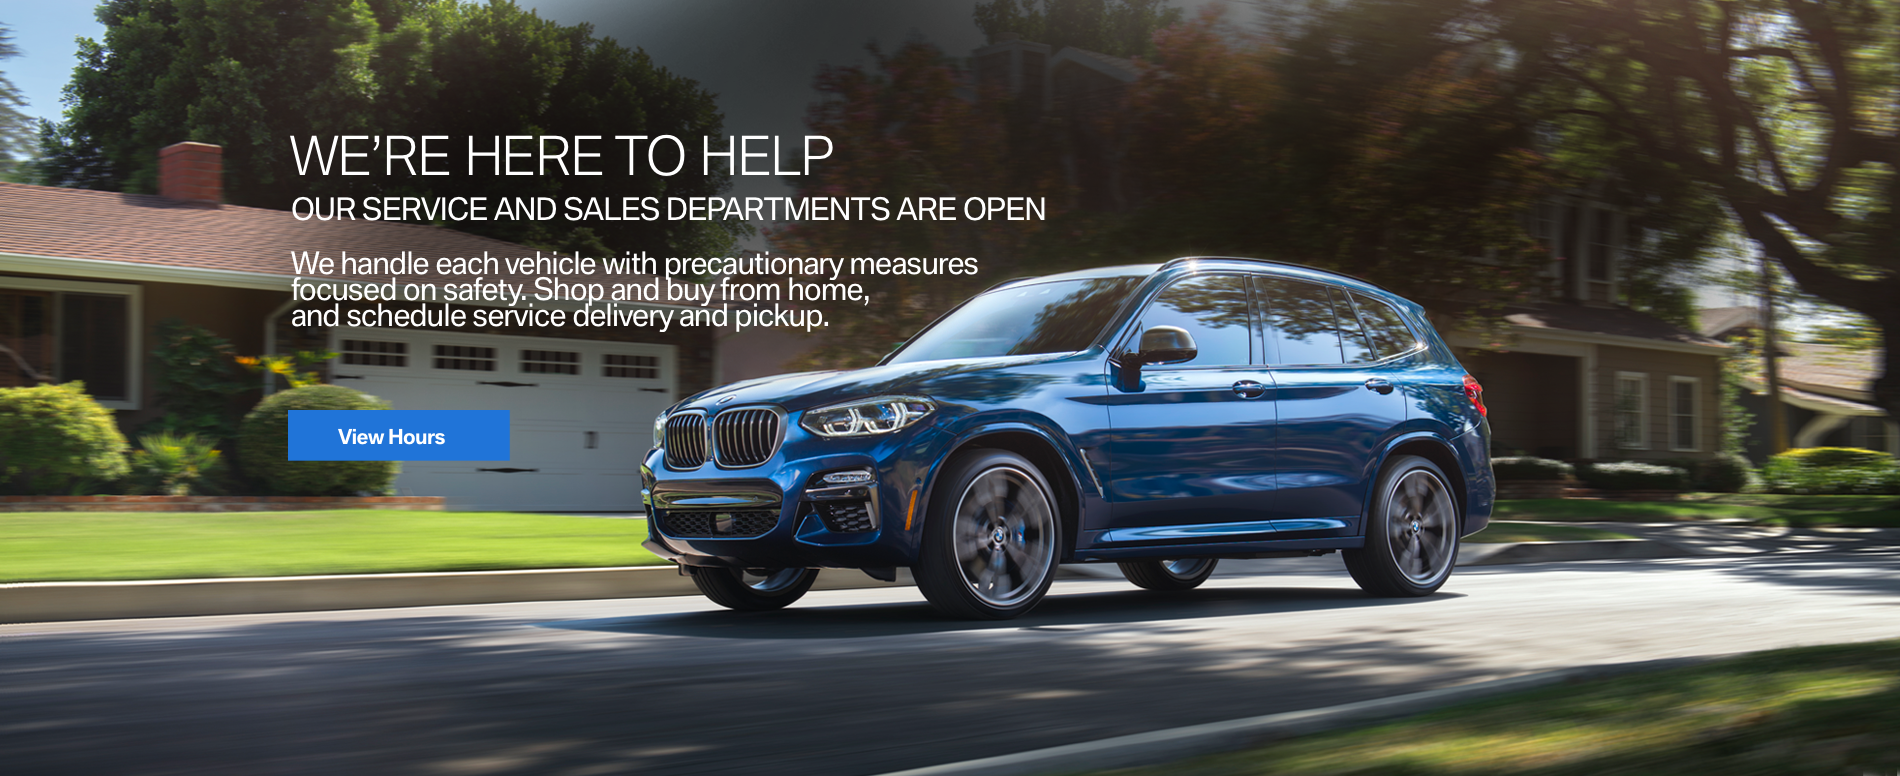 BMW SERVICE AND SALES